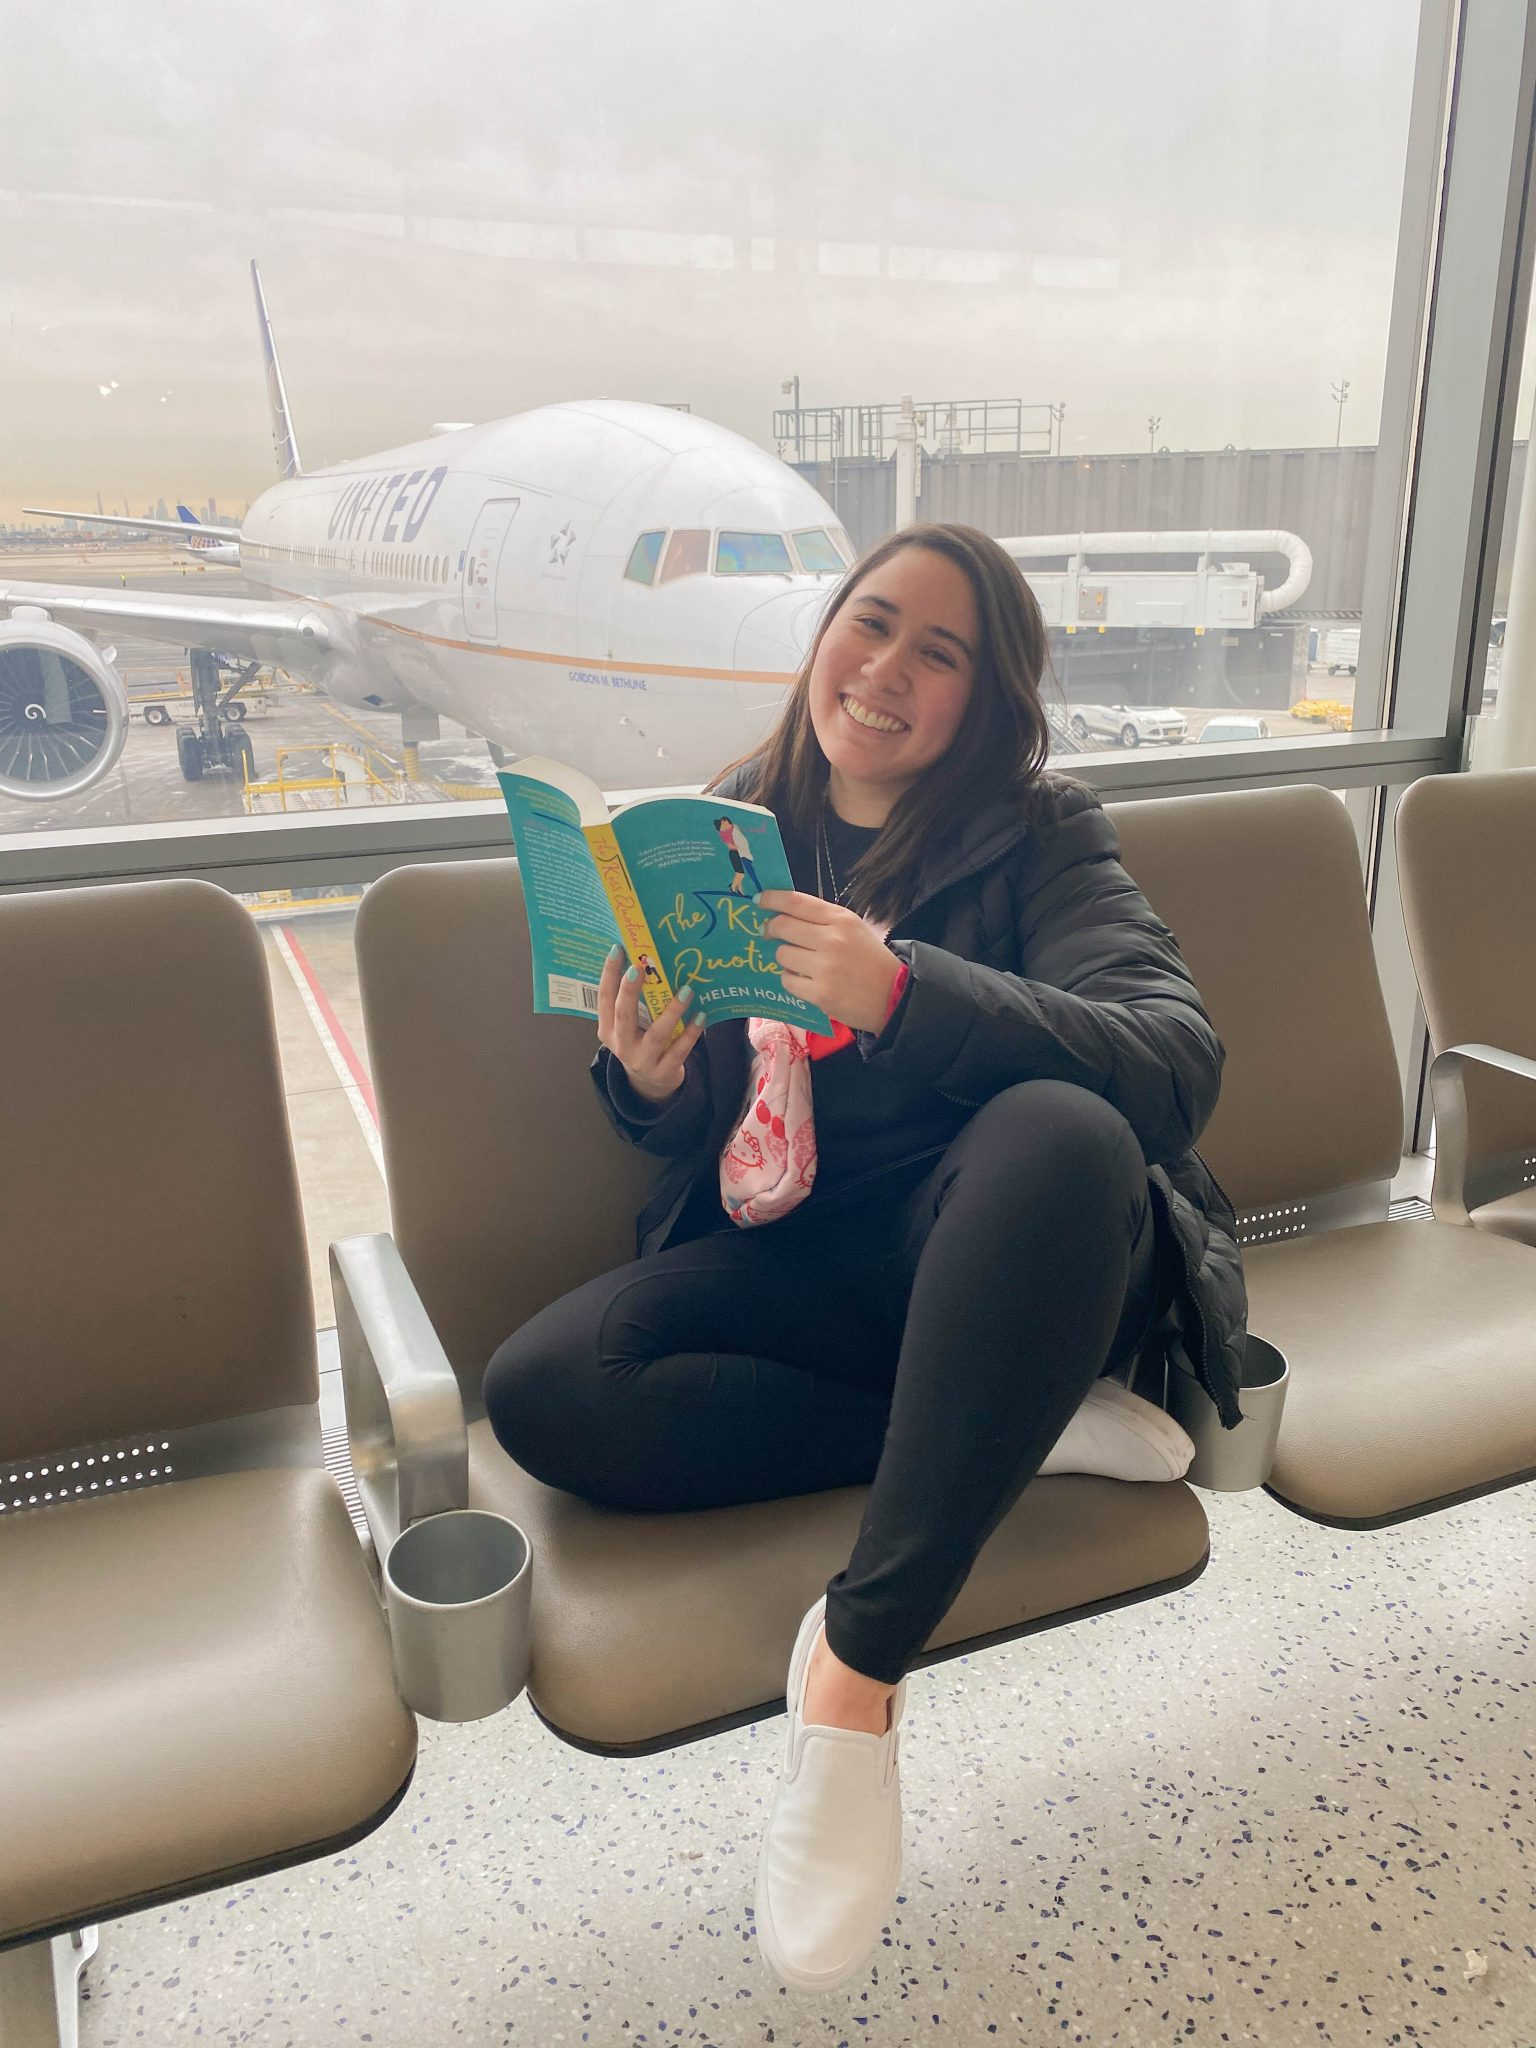 January Books by popular NYC life and style blog, Live Laugh Linda: image of a woman sitting in a airport and reading a book by Helen Hoang.